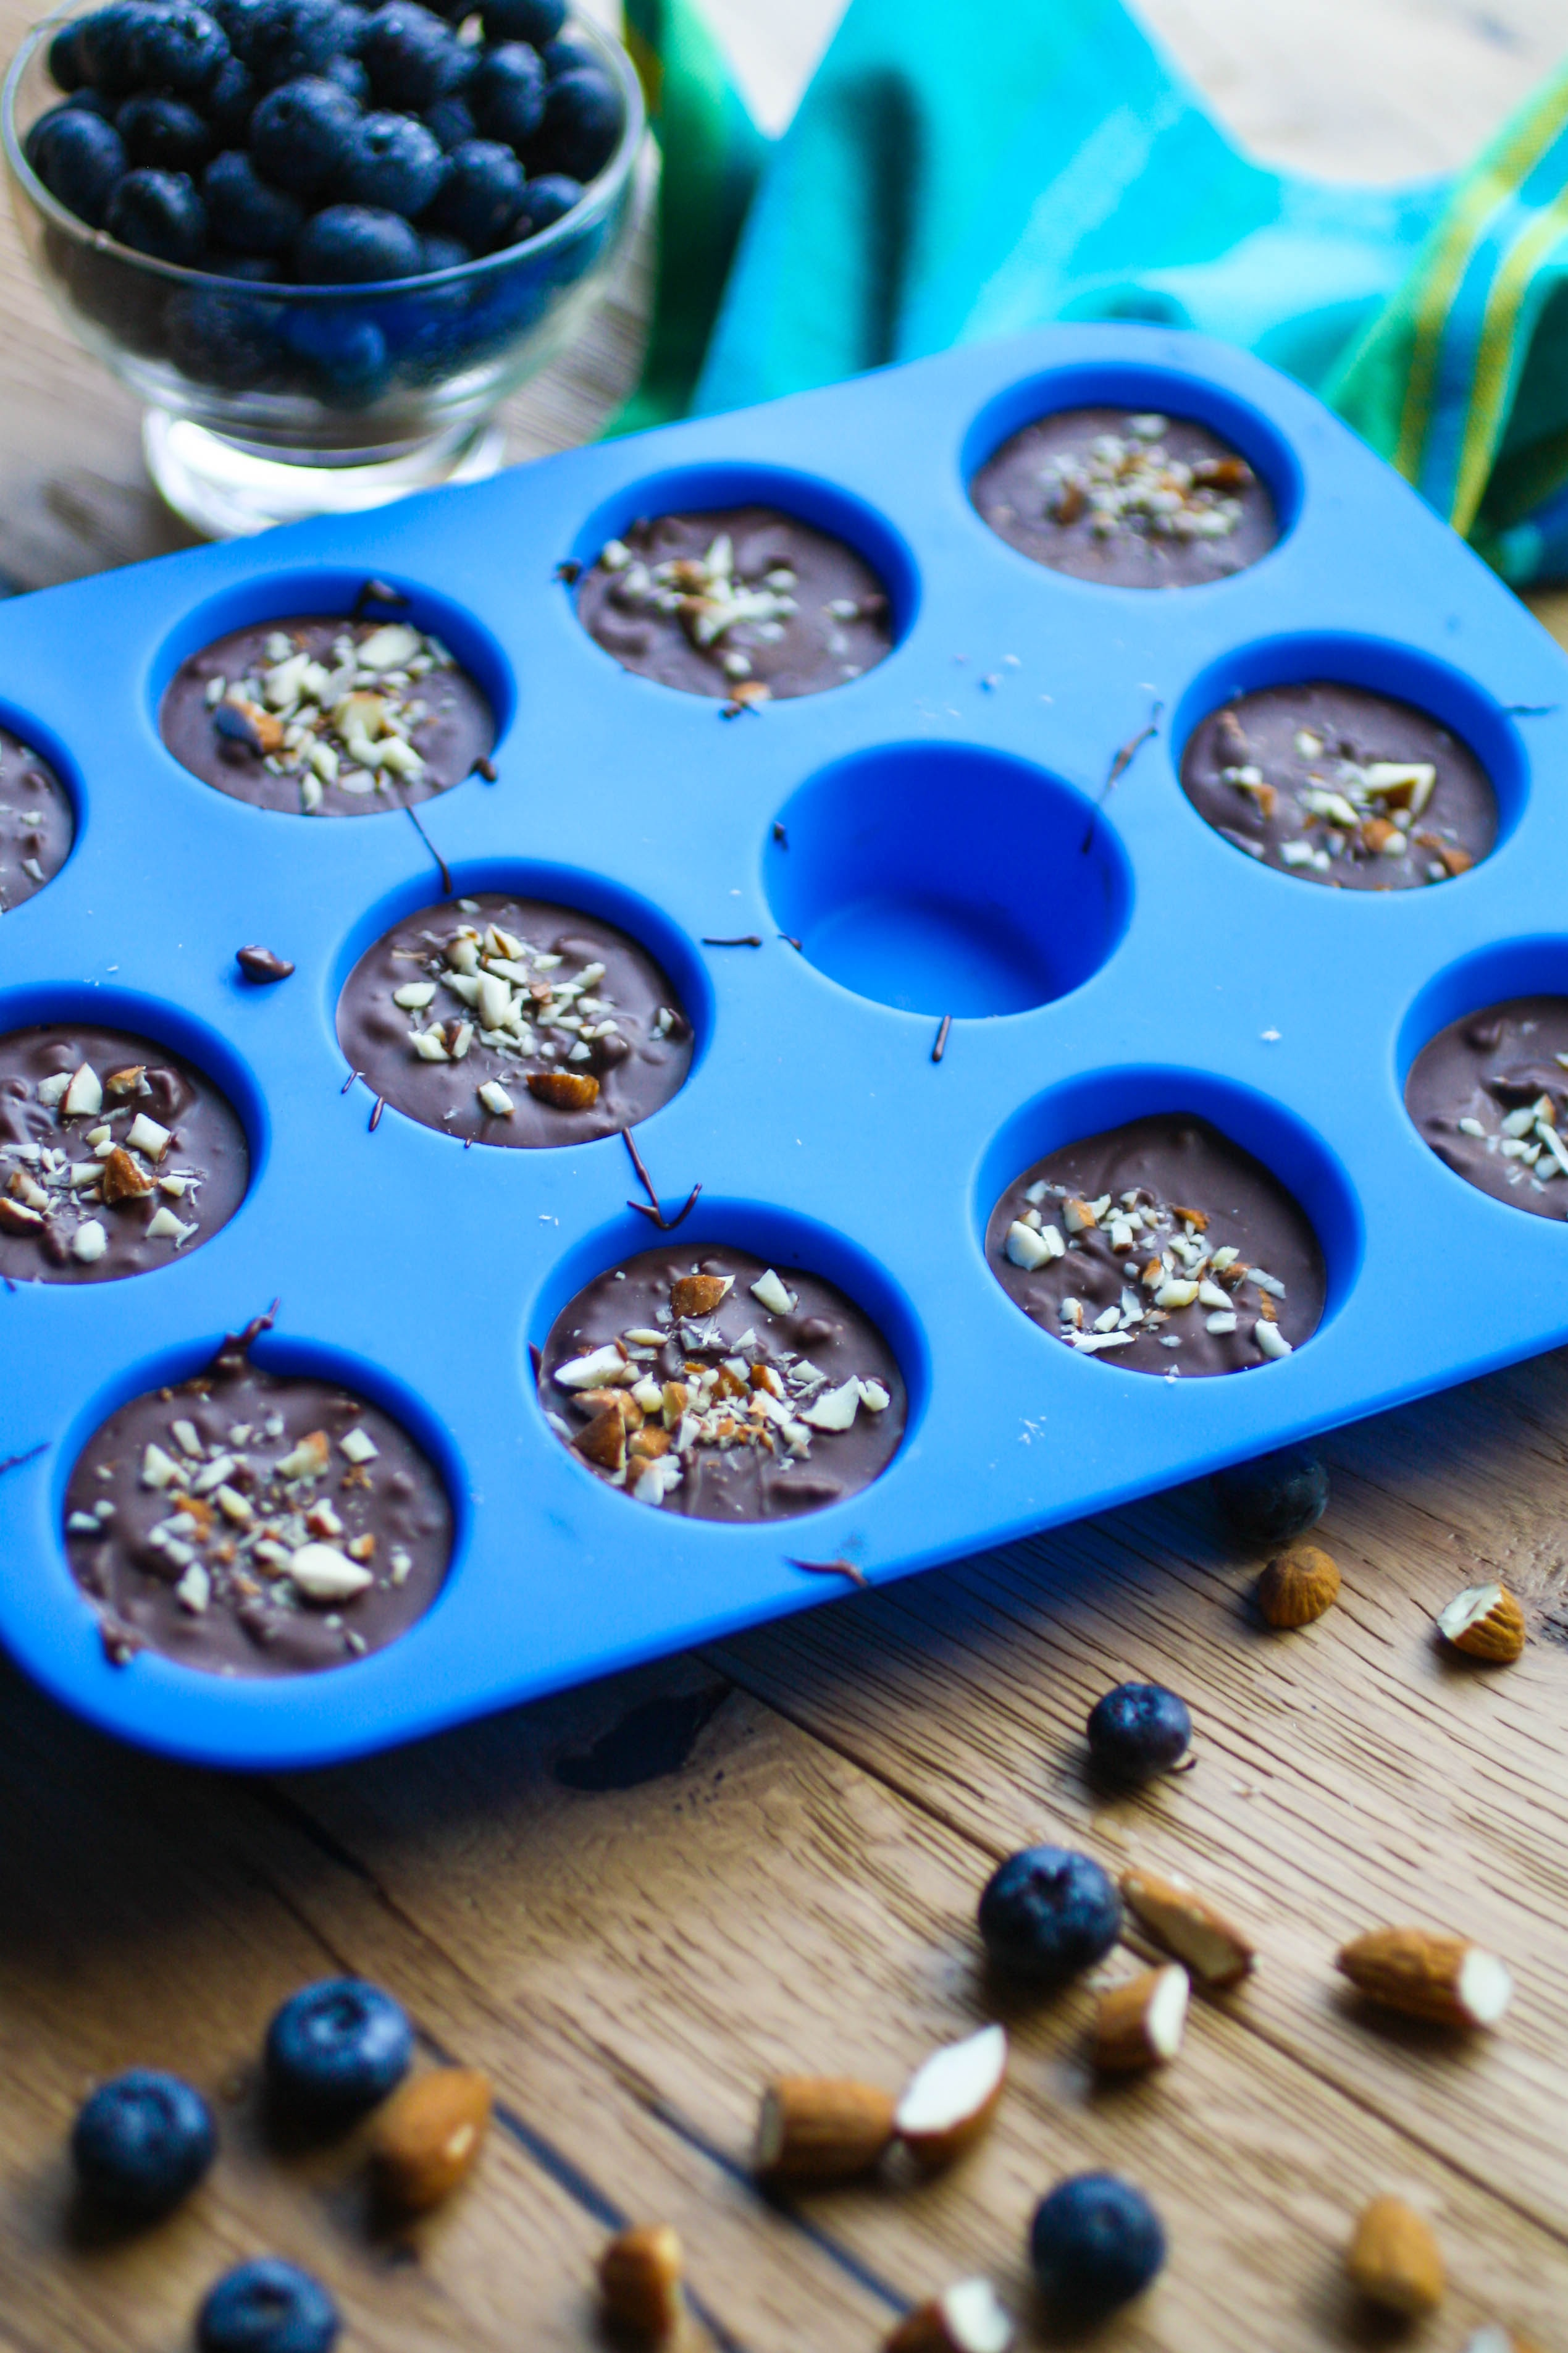 Chocolate Almond Blueberry Bites are a fabulous and easy-to-make treats! This candy is a tasty treat!